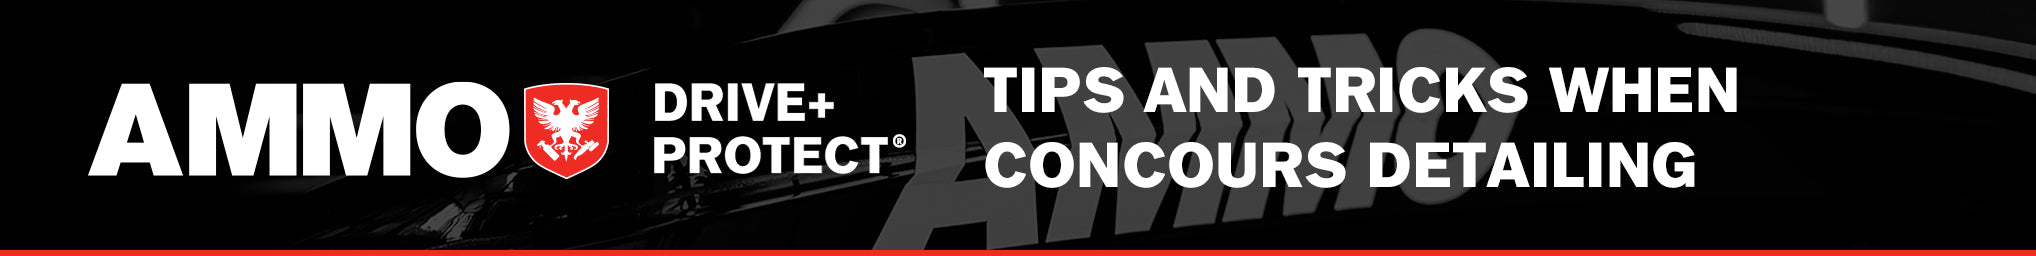 Tips and Tricks when concours detailing